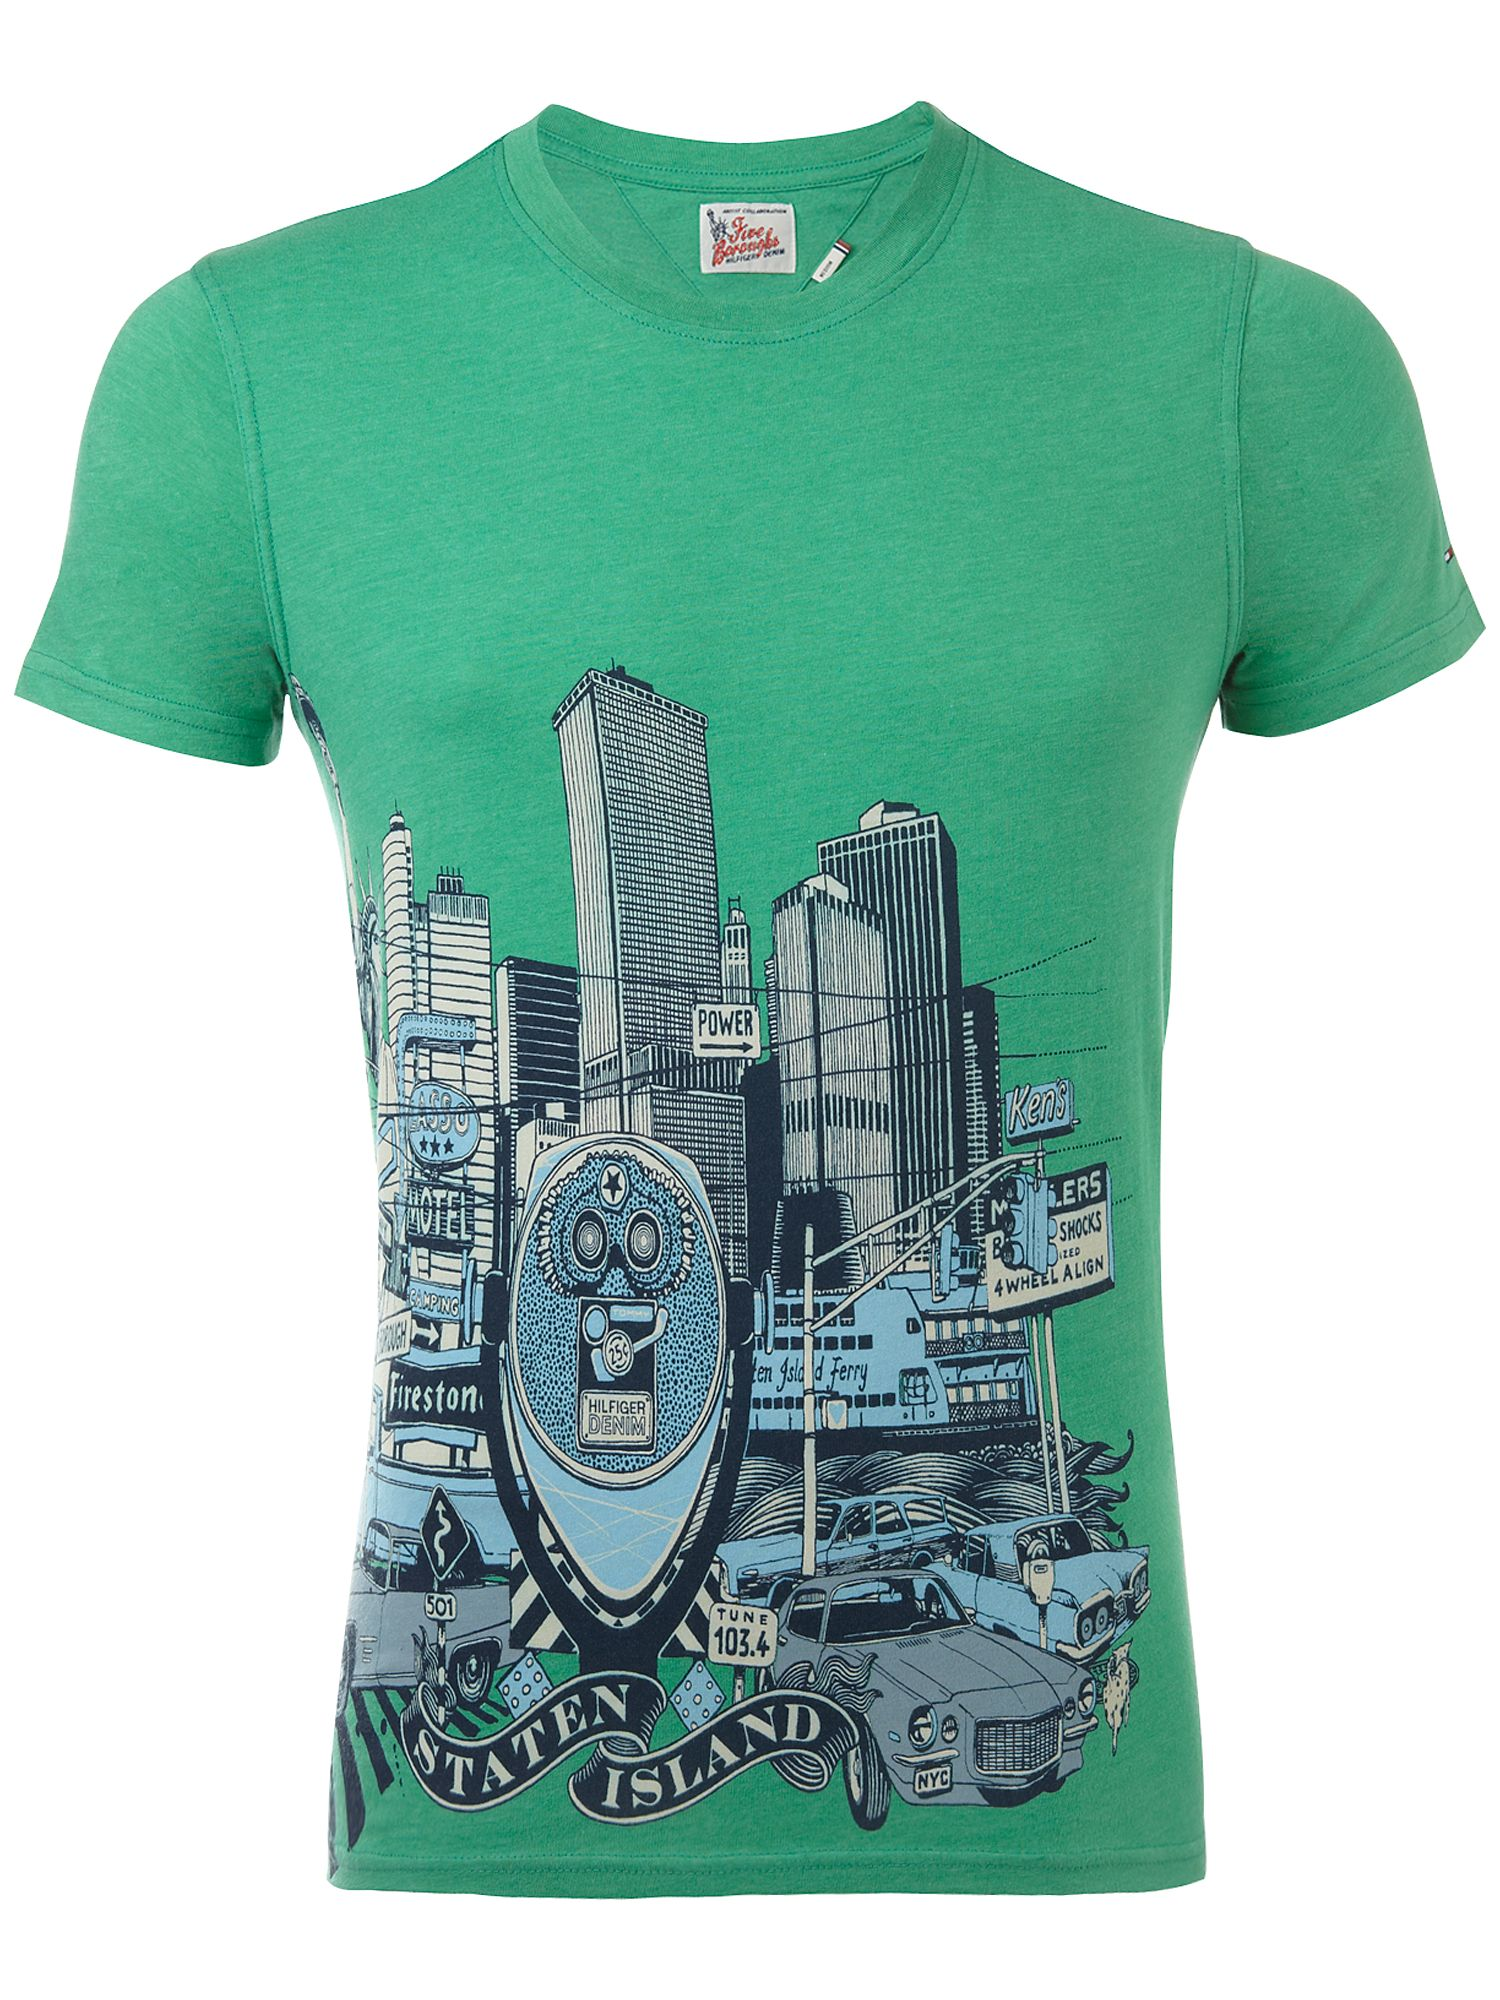 Tommy Hilfiger Staten crew neck T-shirt Green product image